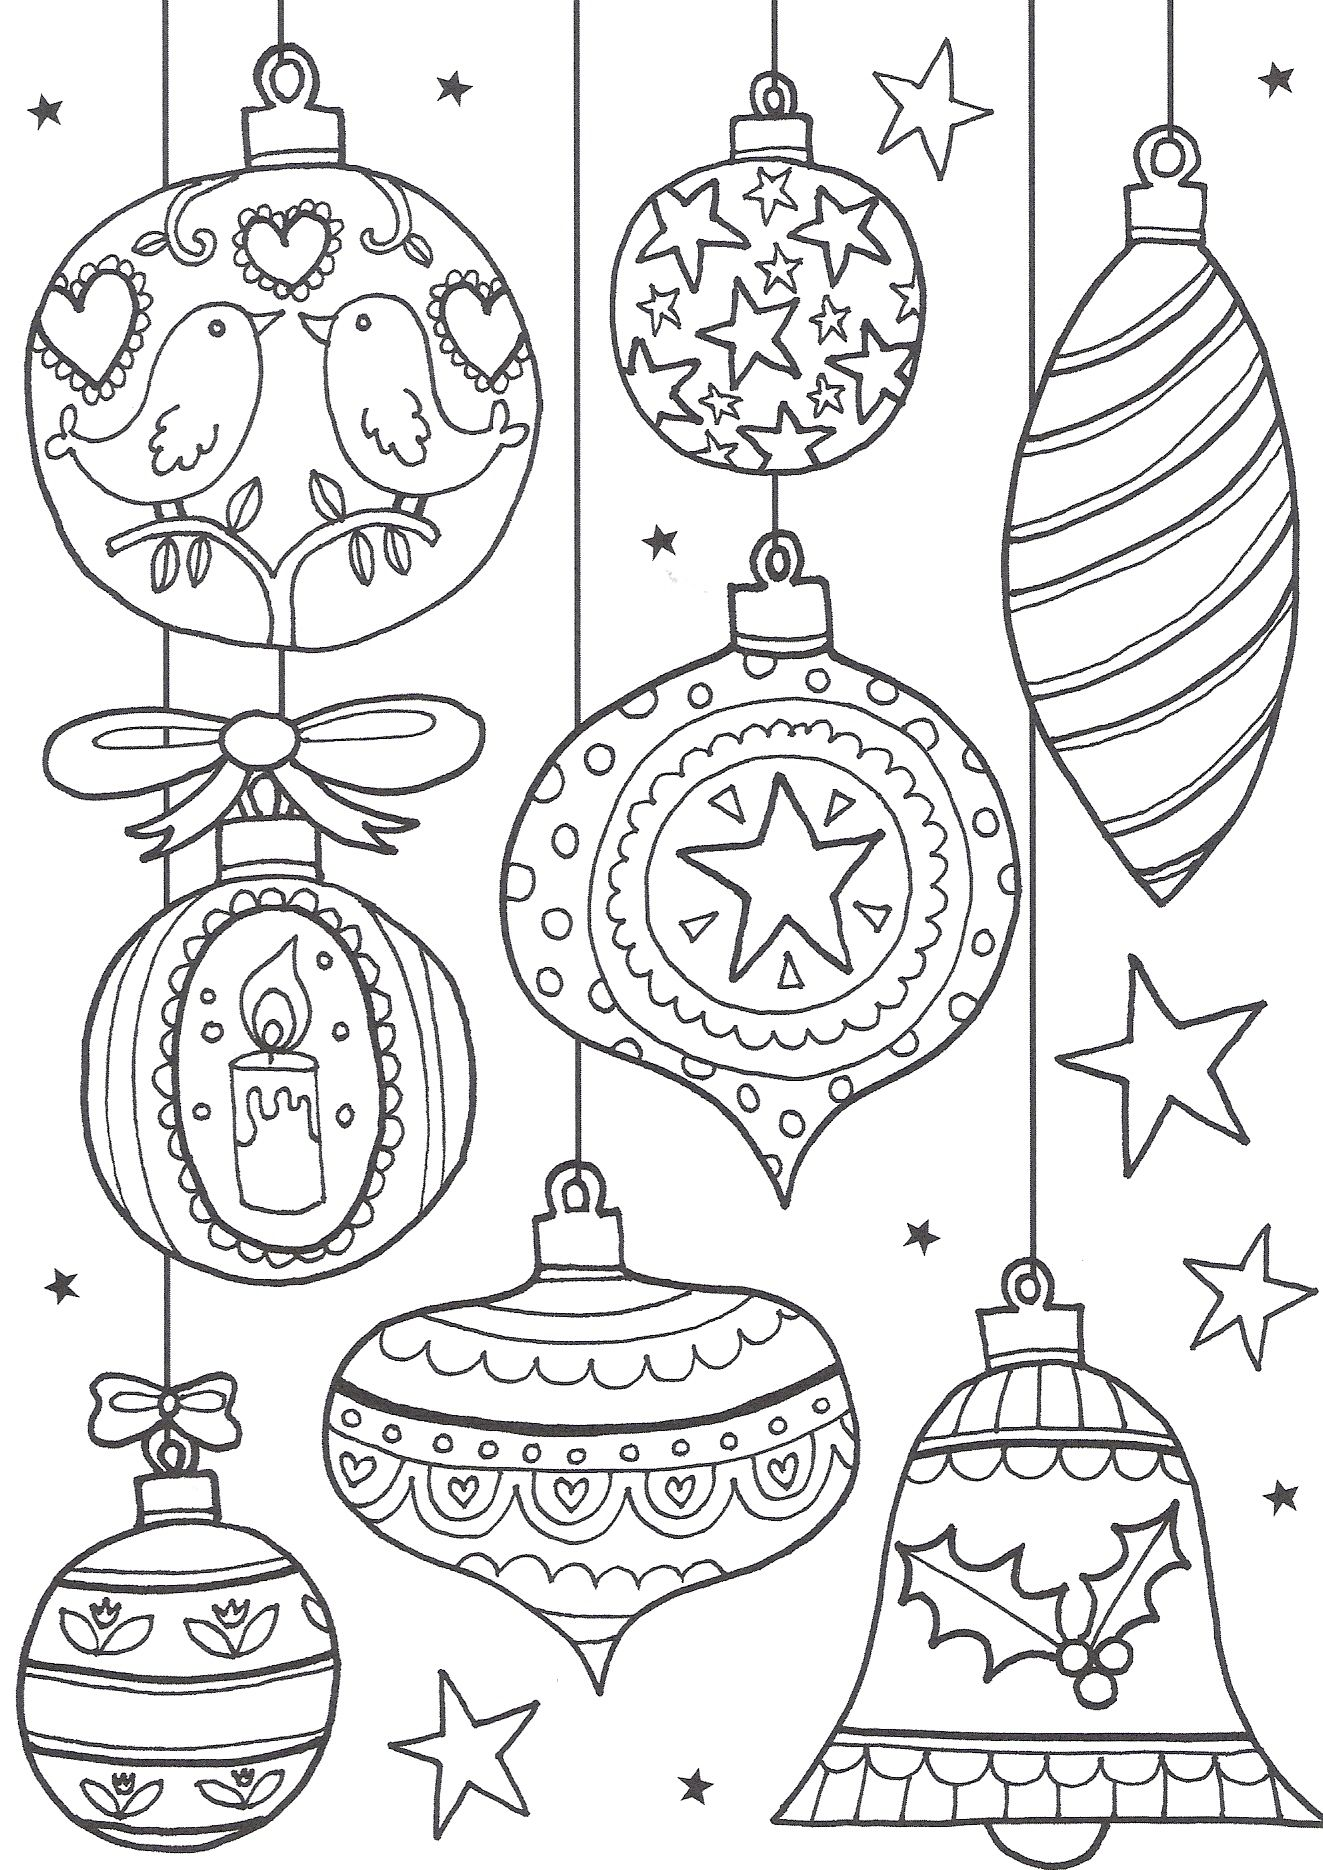 reindeer colouring page christmas baubles